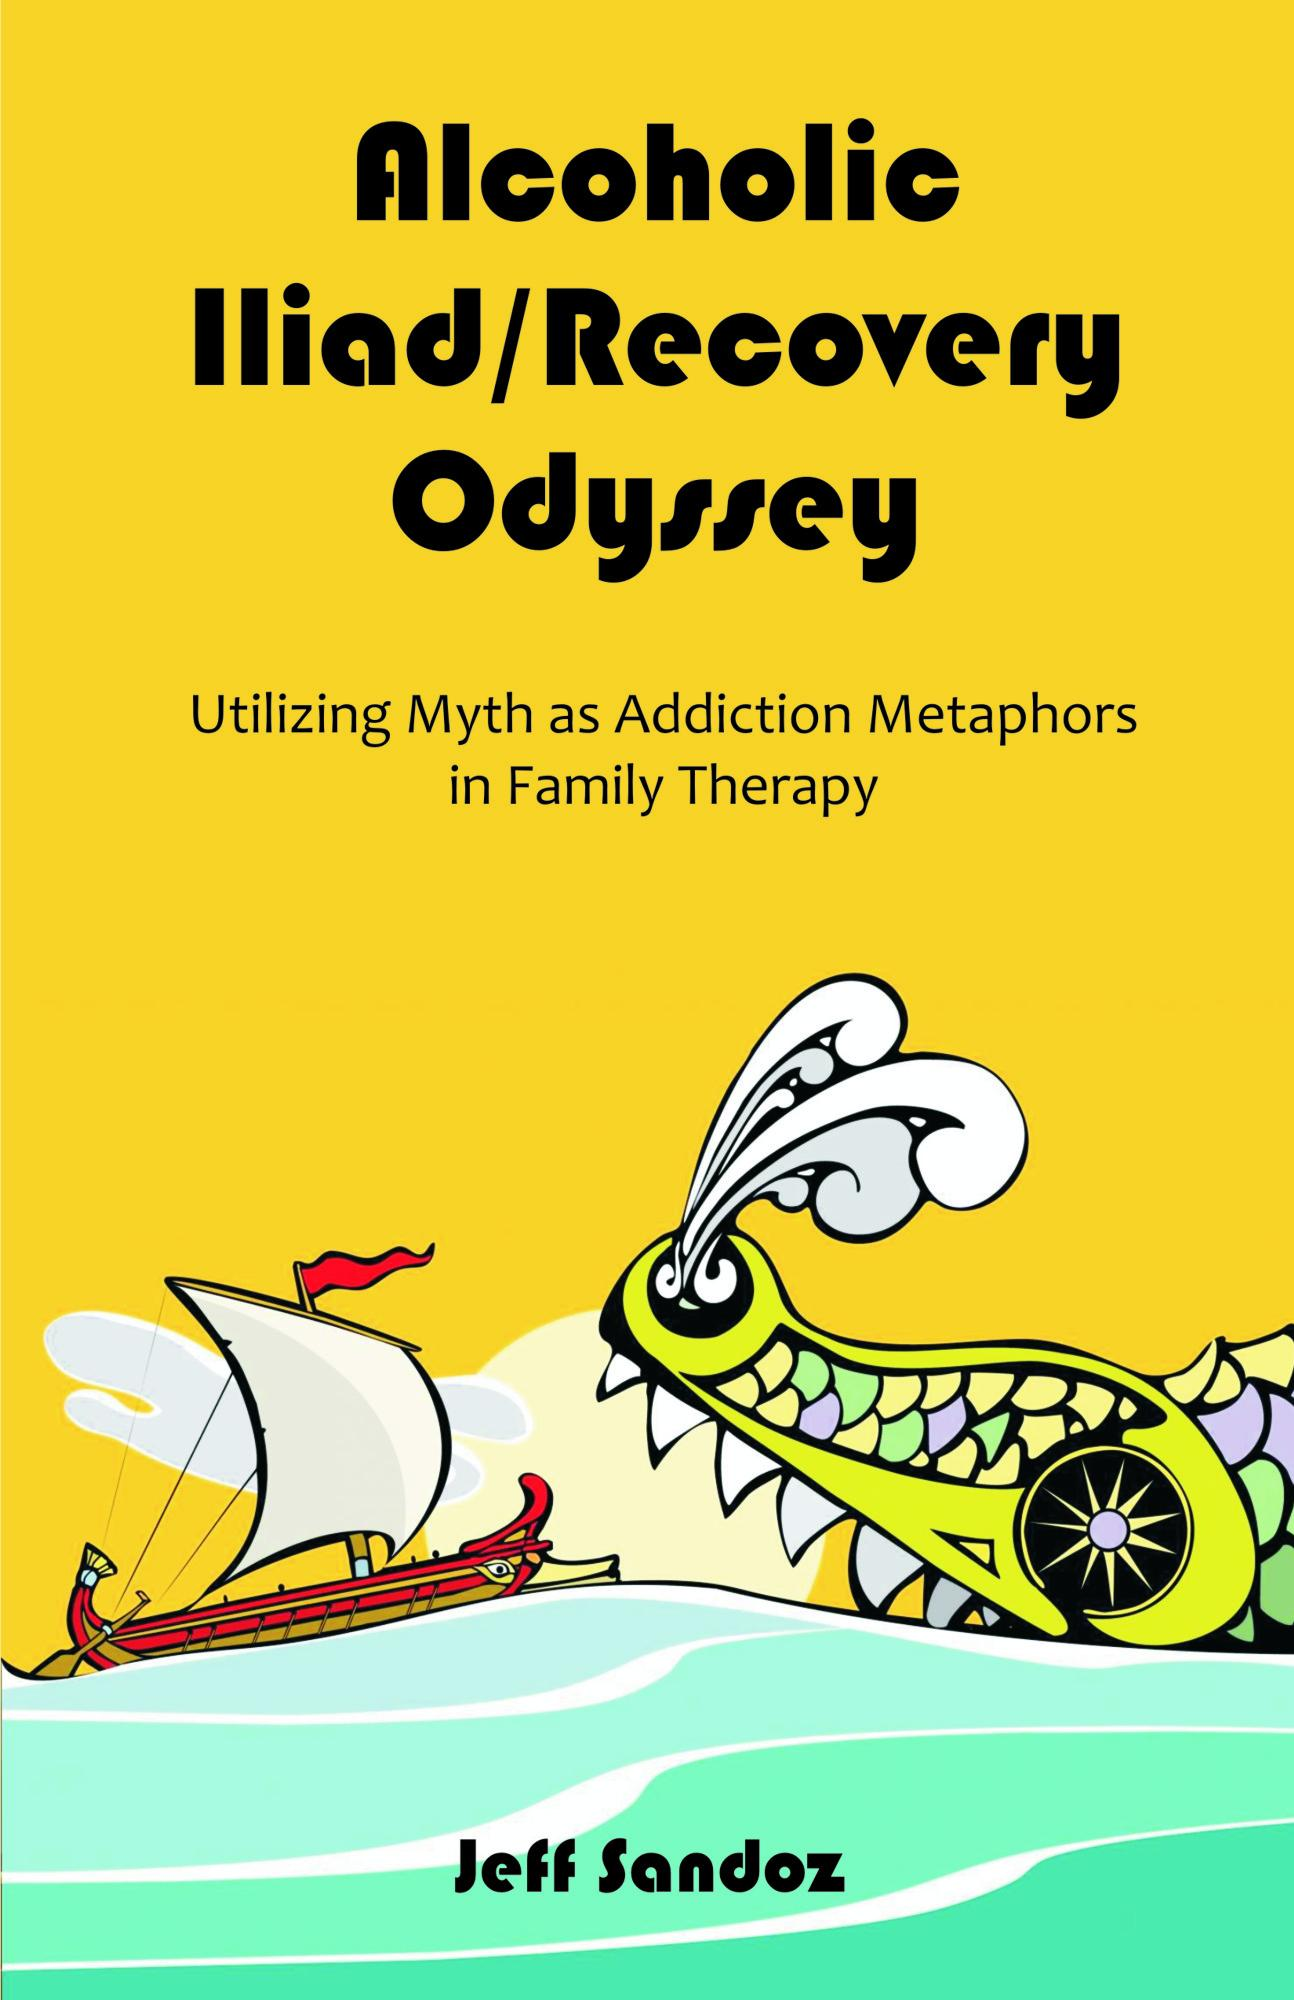 Alcoholic Iliad/Recovery Odyssey: Utilizing Myth as Addiction Metaphors in Family Therapy EB9781599425122